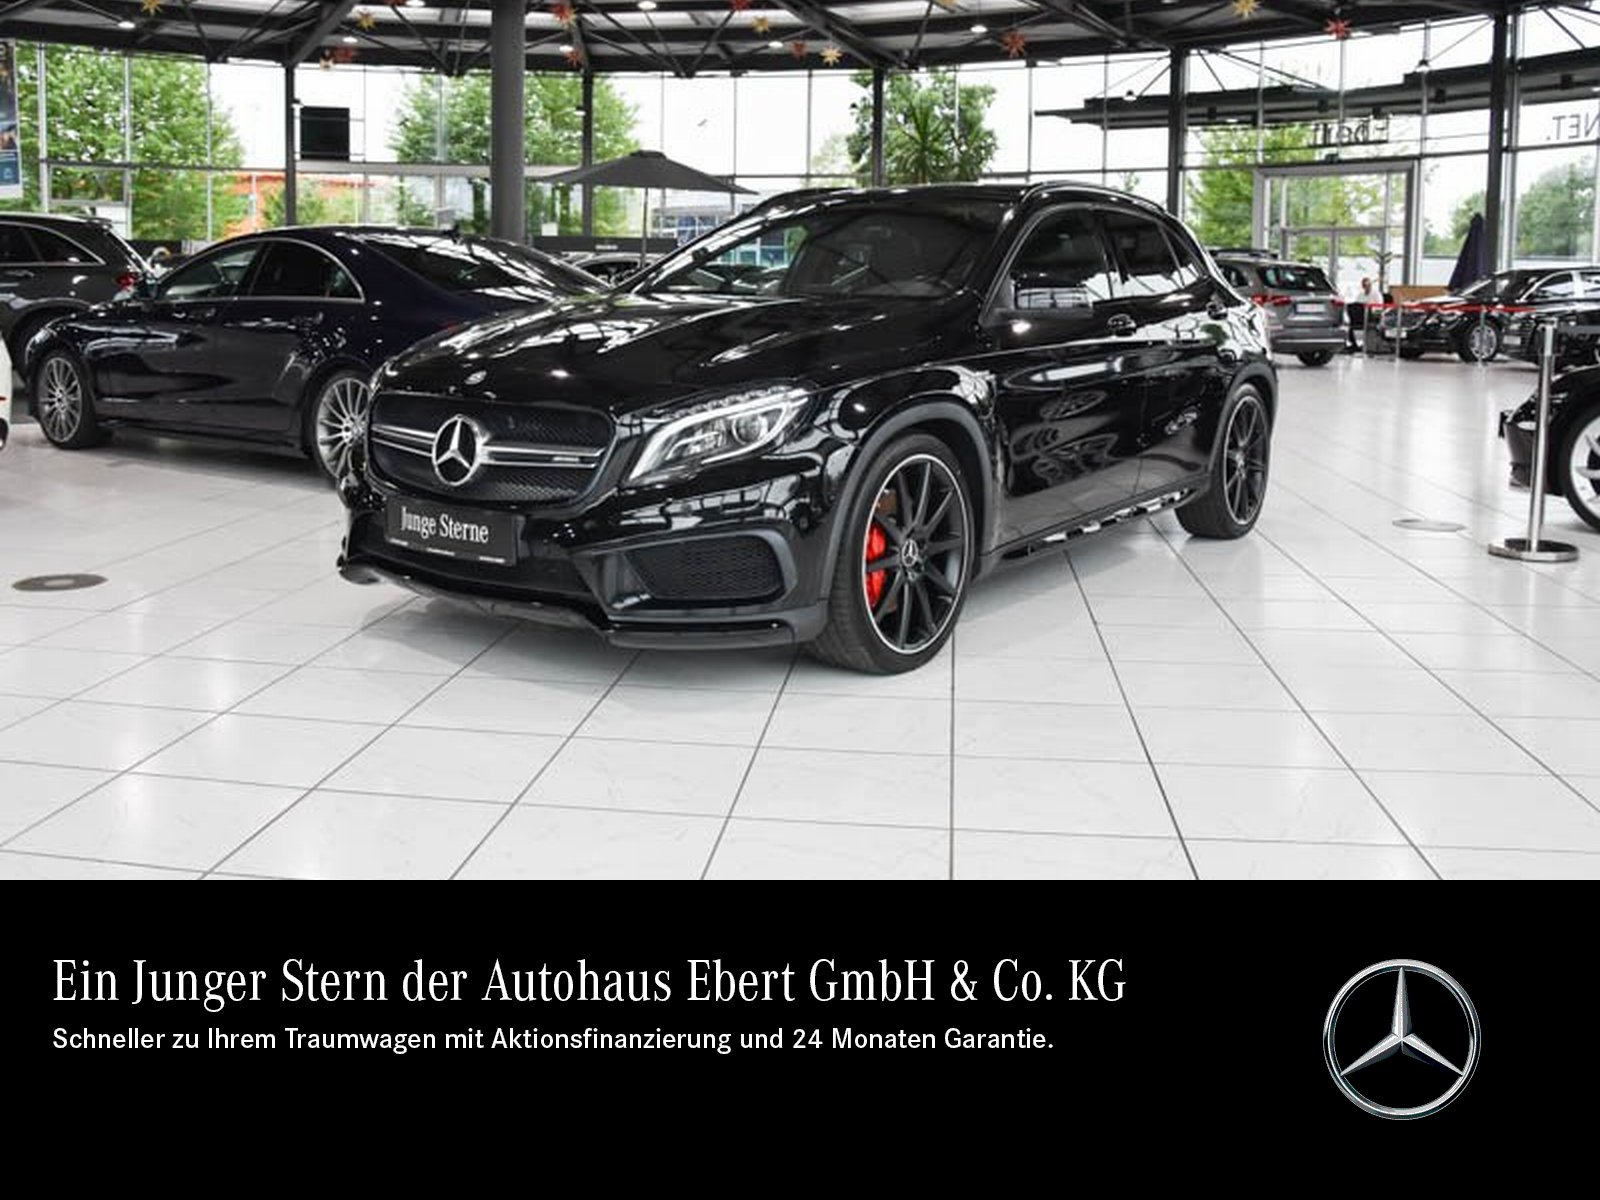 Mercedes-Benz GLA 45 AMG 4M COMAND+ILS+PSD+NIGHT+KAMERA+EASY P, Jahr 2015, Benzin